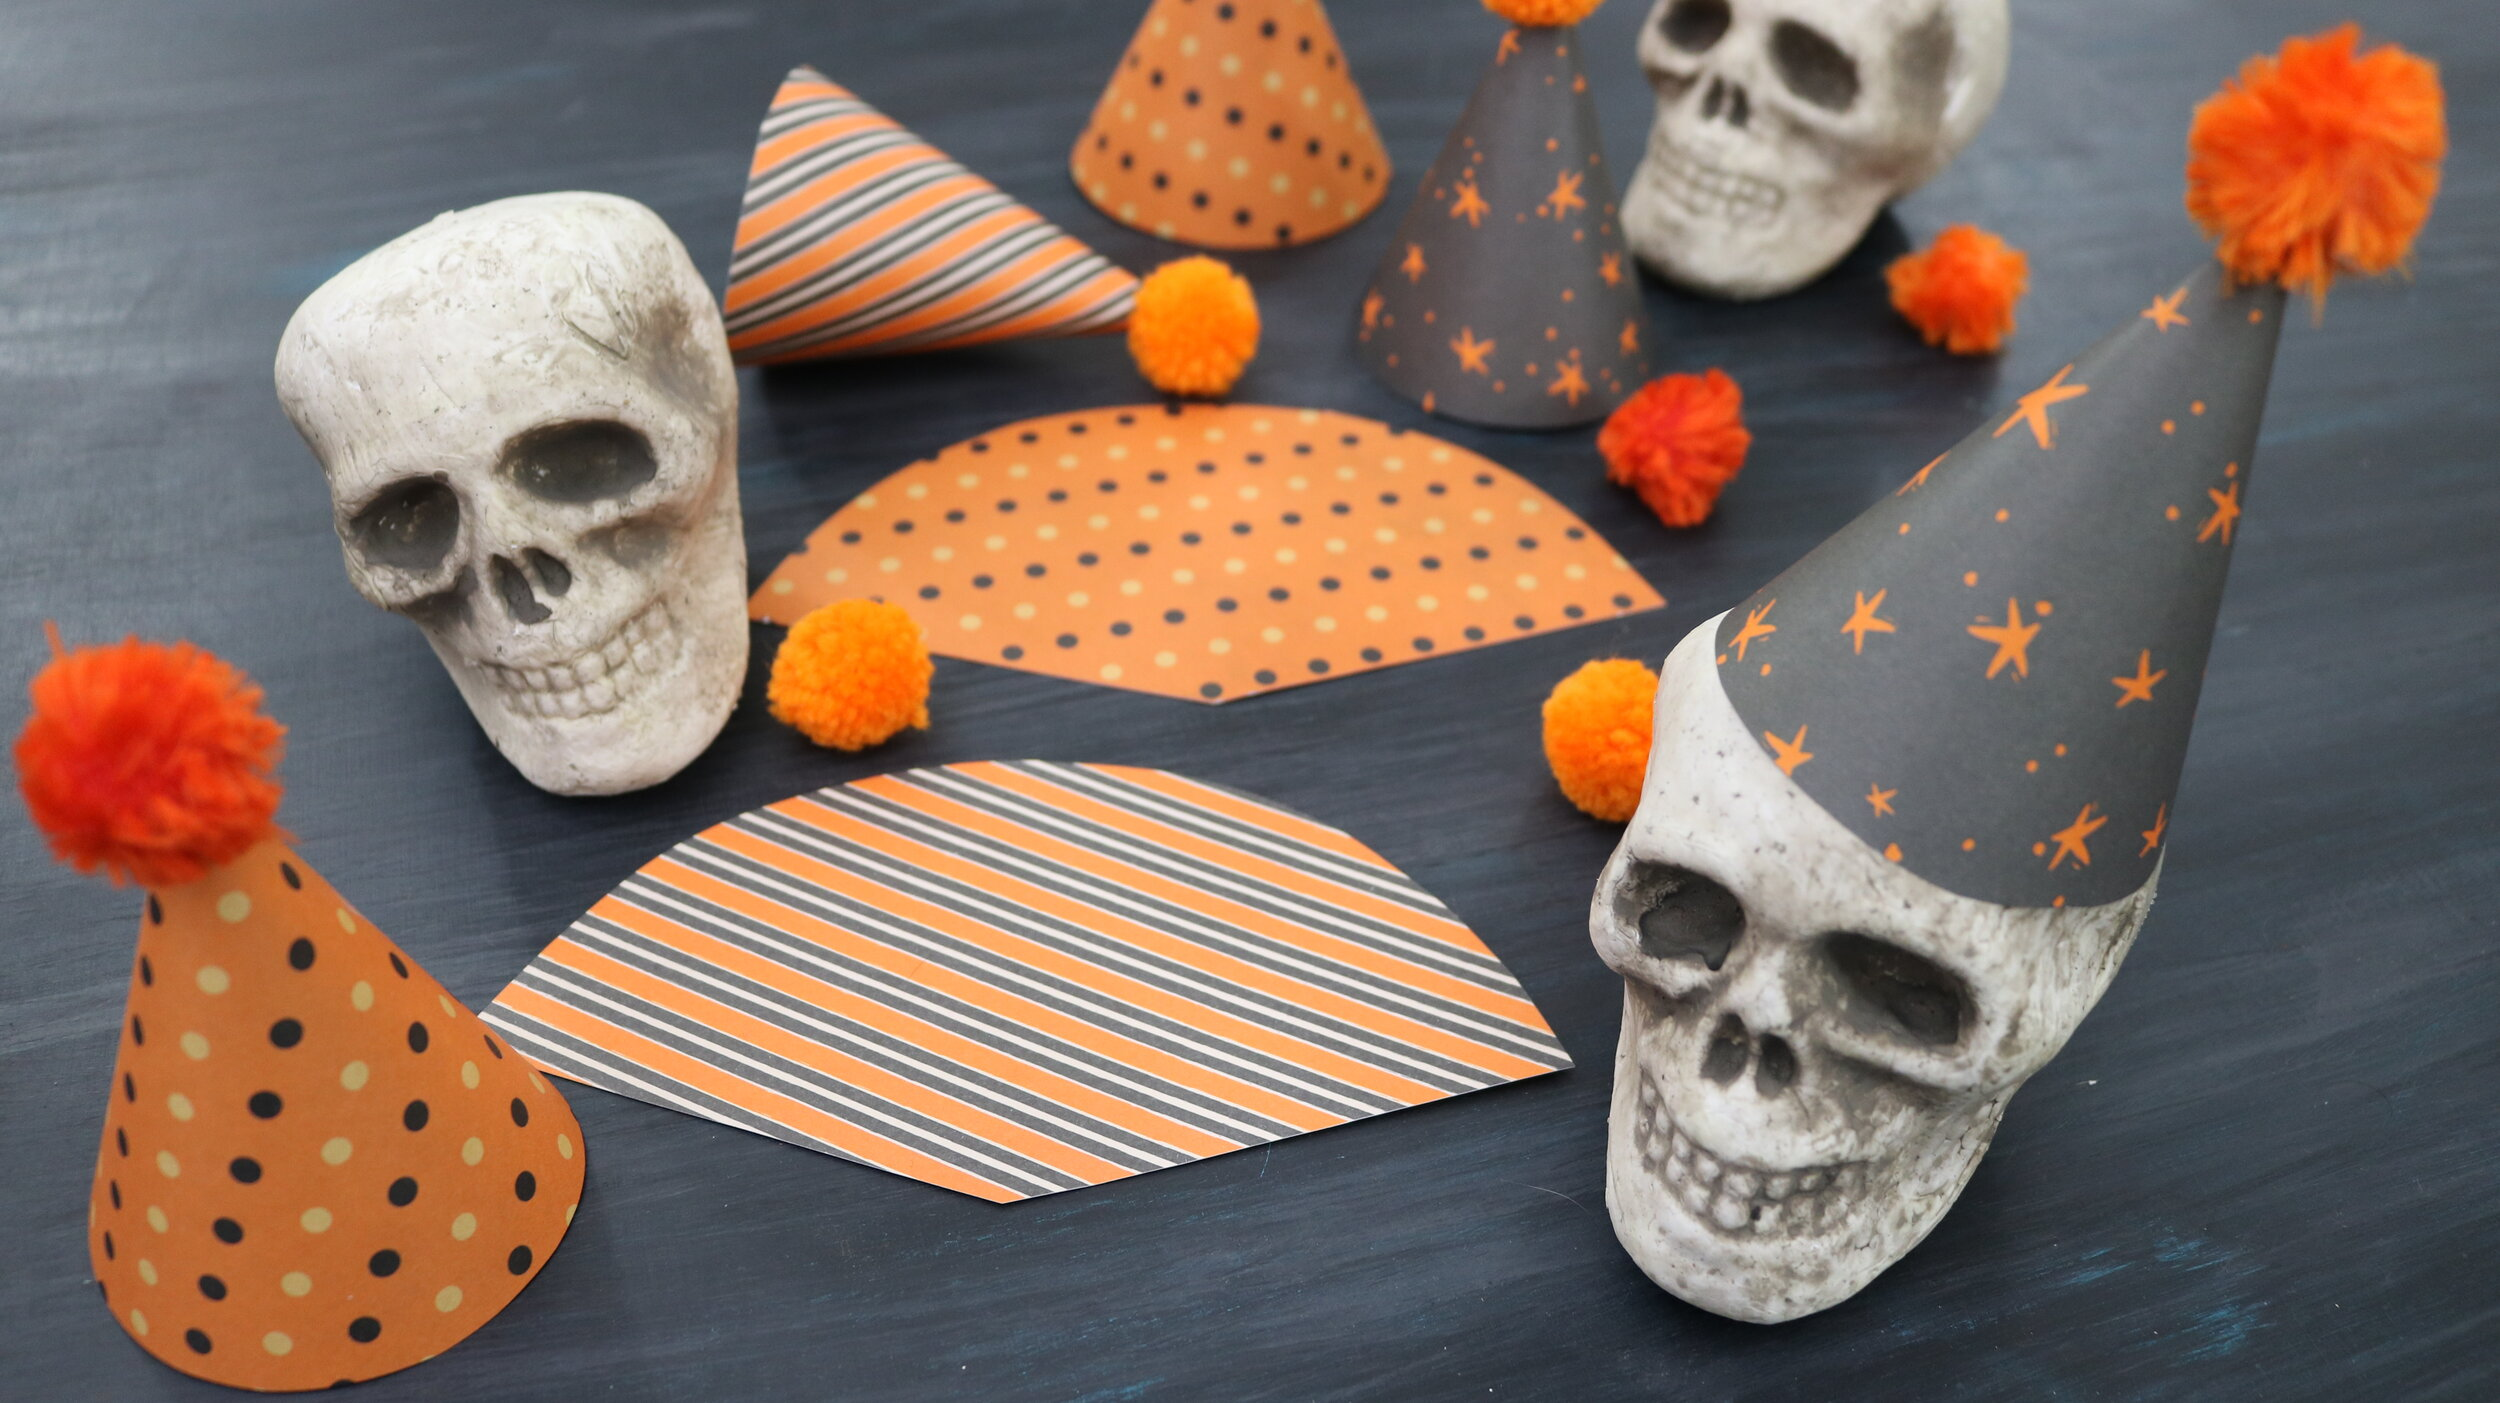 DIY Skull Garland Halloween Birthday Party  With a few simple materials, you can make a one-of-a-kind birthday garland with a huge impact that will be sure to fright and delight your party guests! They're dying to celebrate you!  #halloweendecorations #halloweendecor #halloweendiycrafts #birthdayparty #octoberhalloween #easyhalloweendiy #cuteandcreepy #madebymichaels #michaelshalloween #evite #partyinvitaions #halloweeneveryday #easygarlanddiy